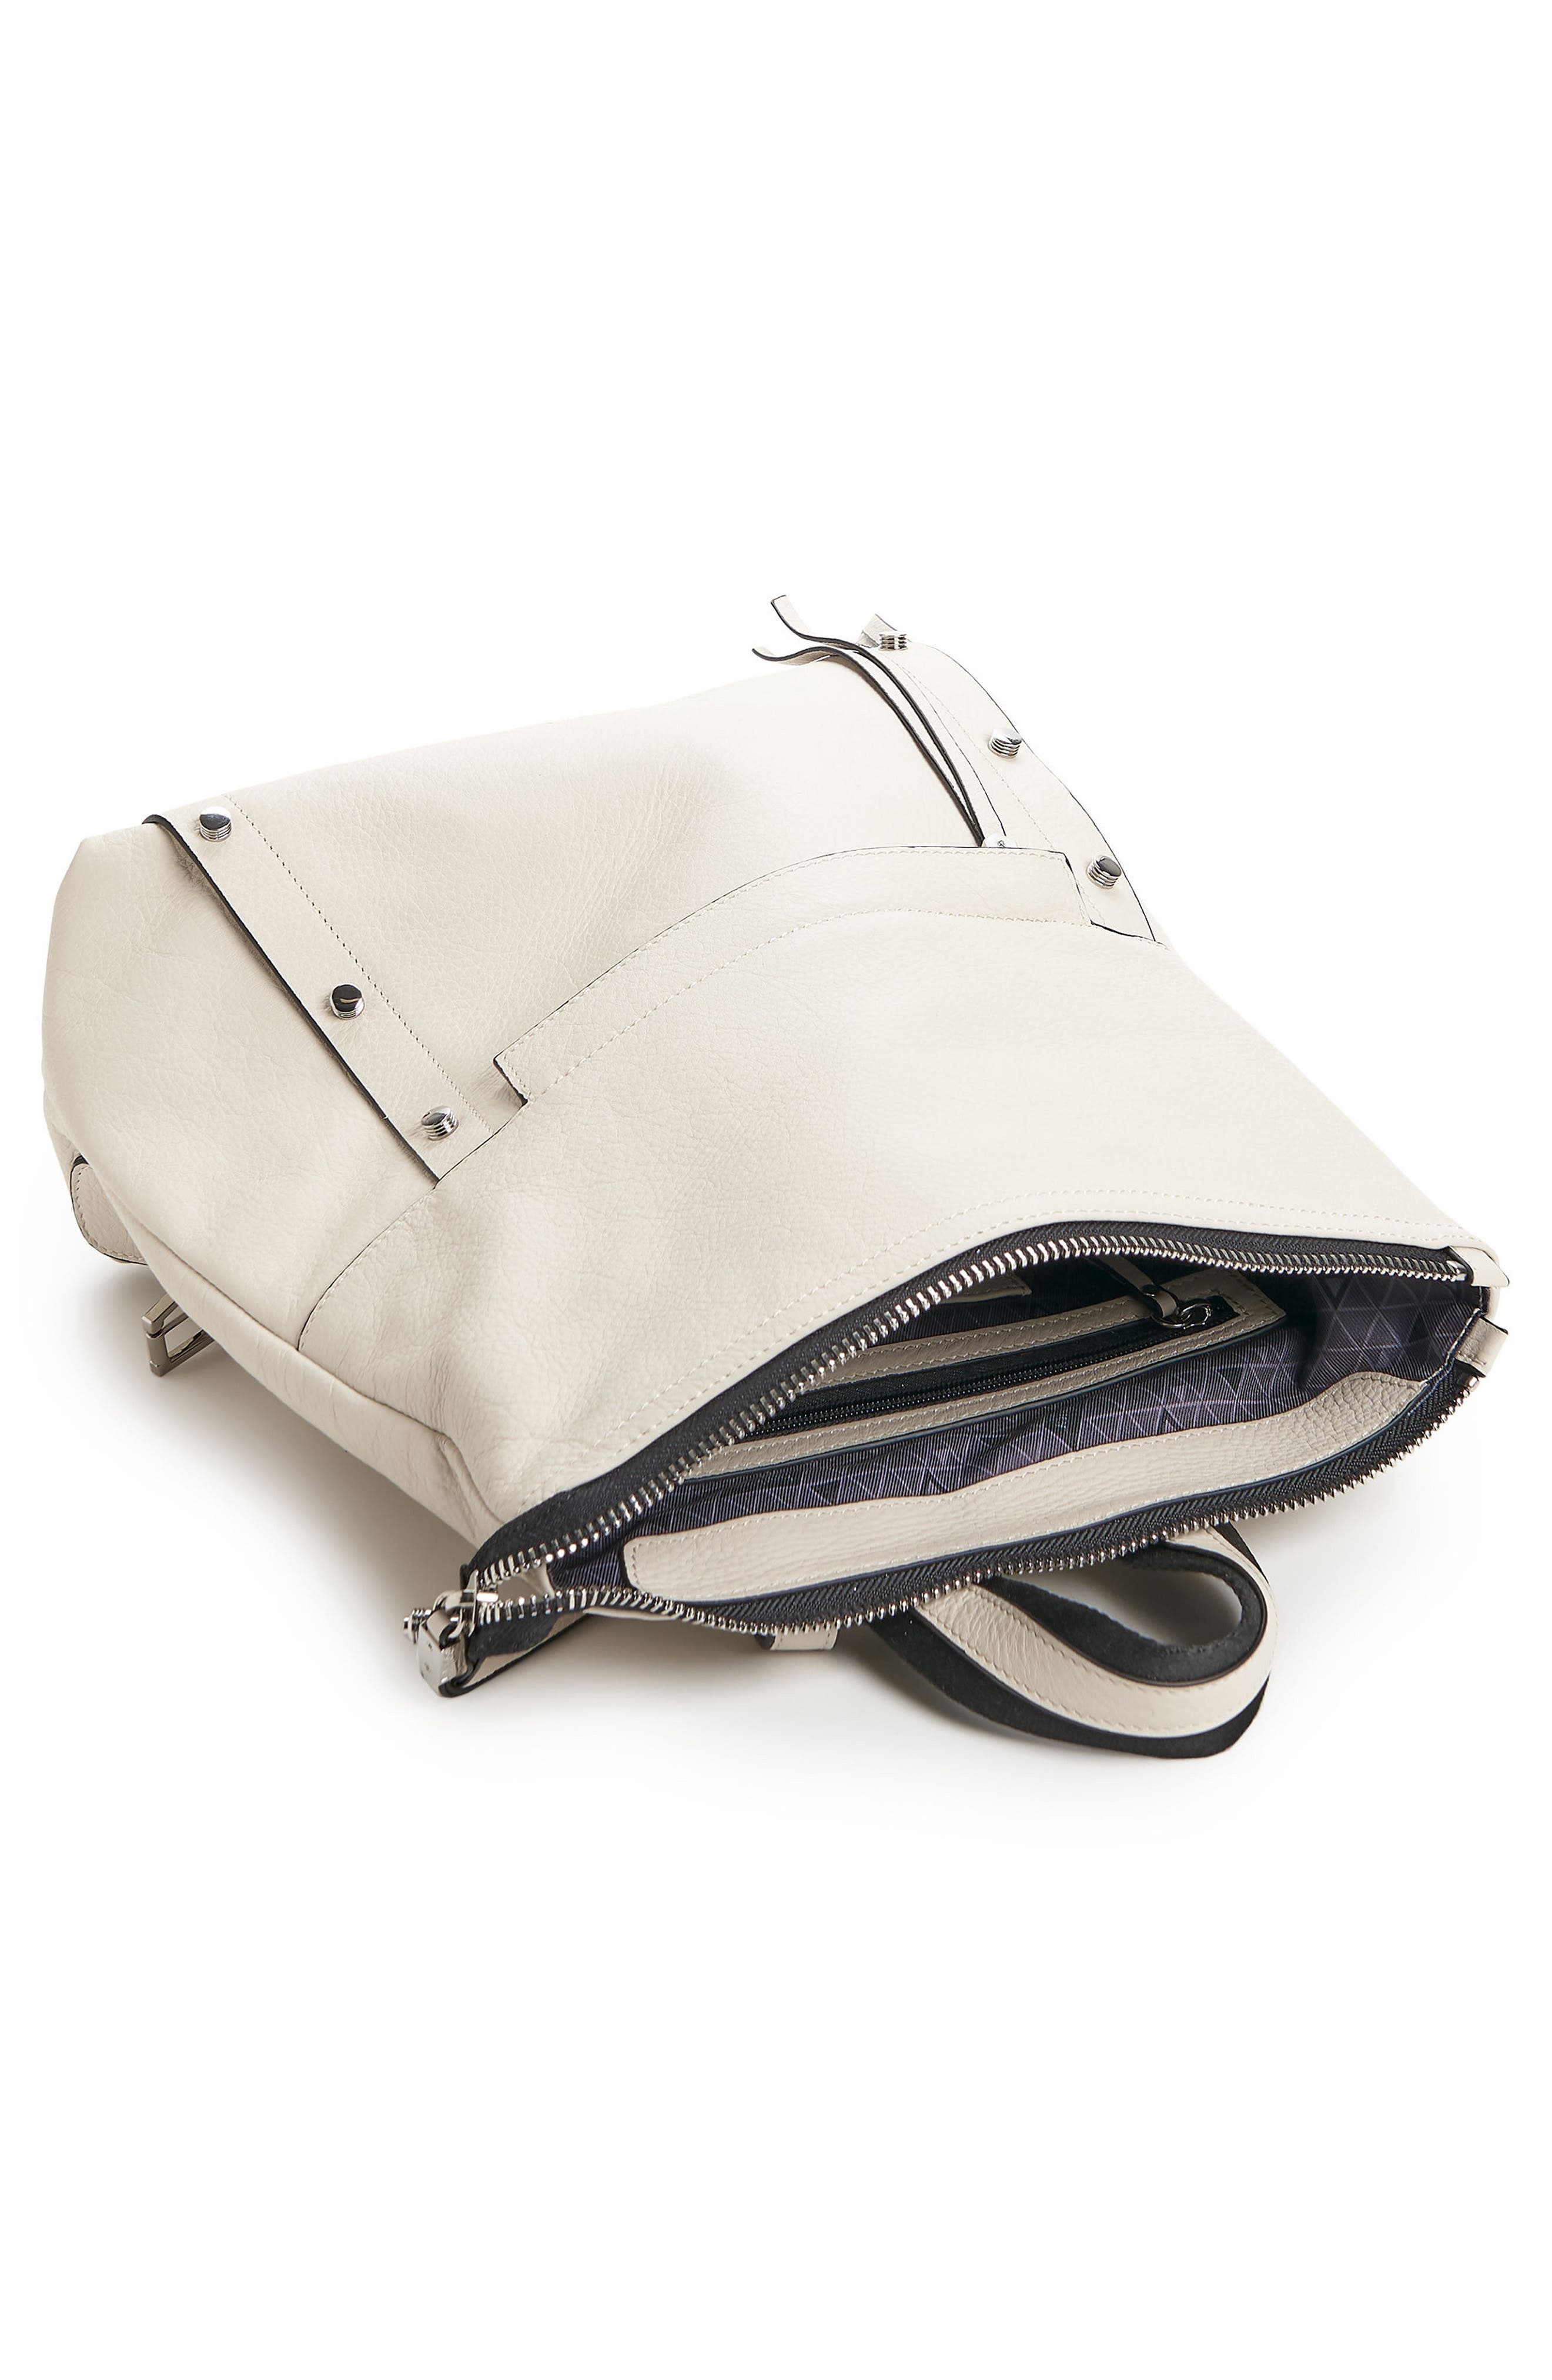 Noho Leather Backpack,                             Alternate thumbnail 3, color,                             CREAM